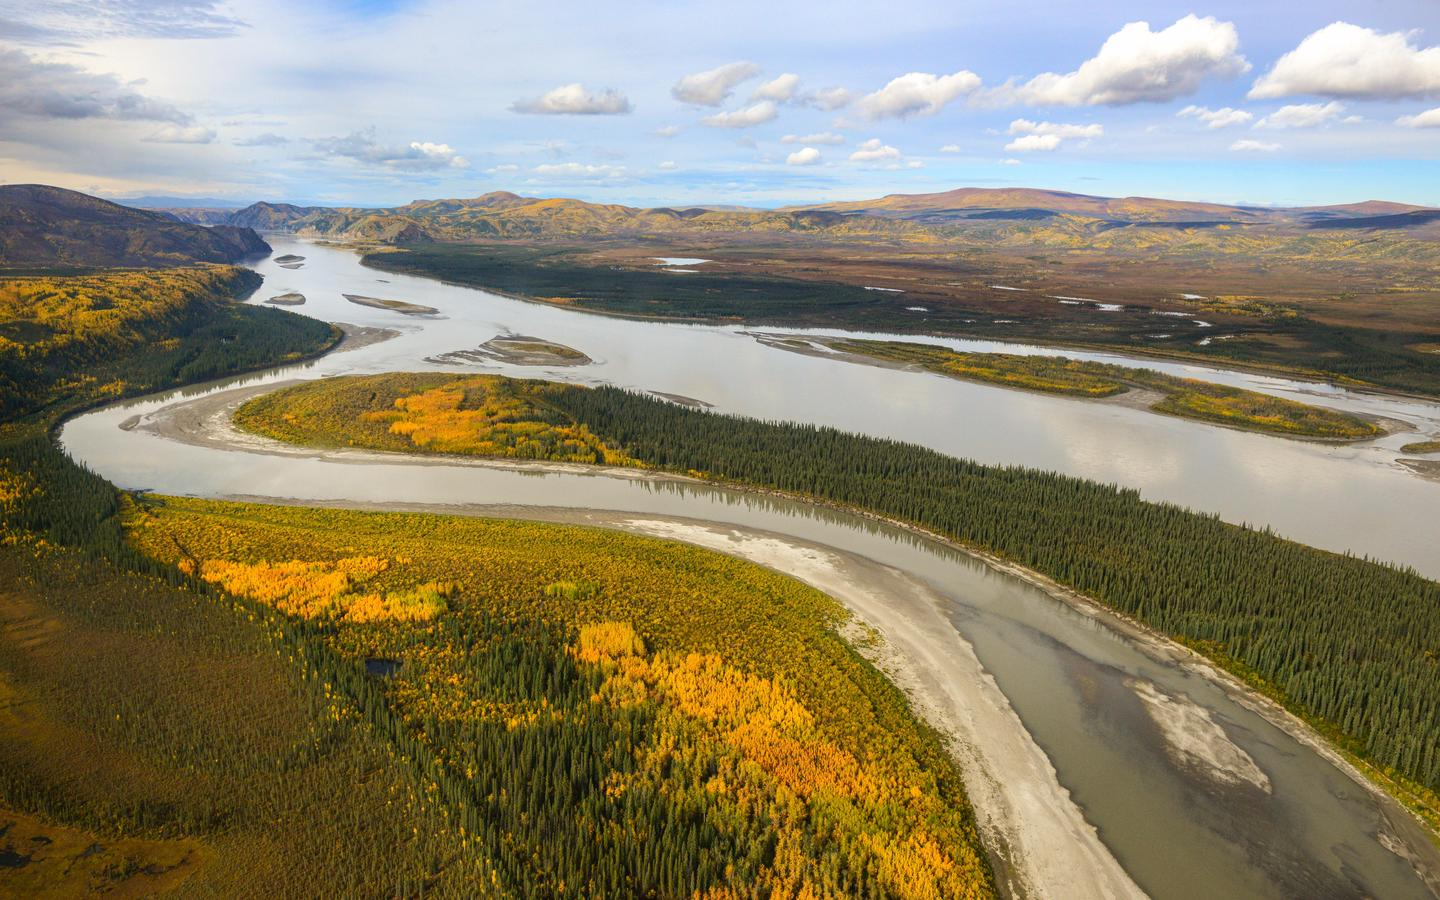 Aerial view of the Yukon RiverThe Yukon River is a vast body of water that has carved its path into the landscape over millions of years.